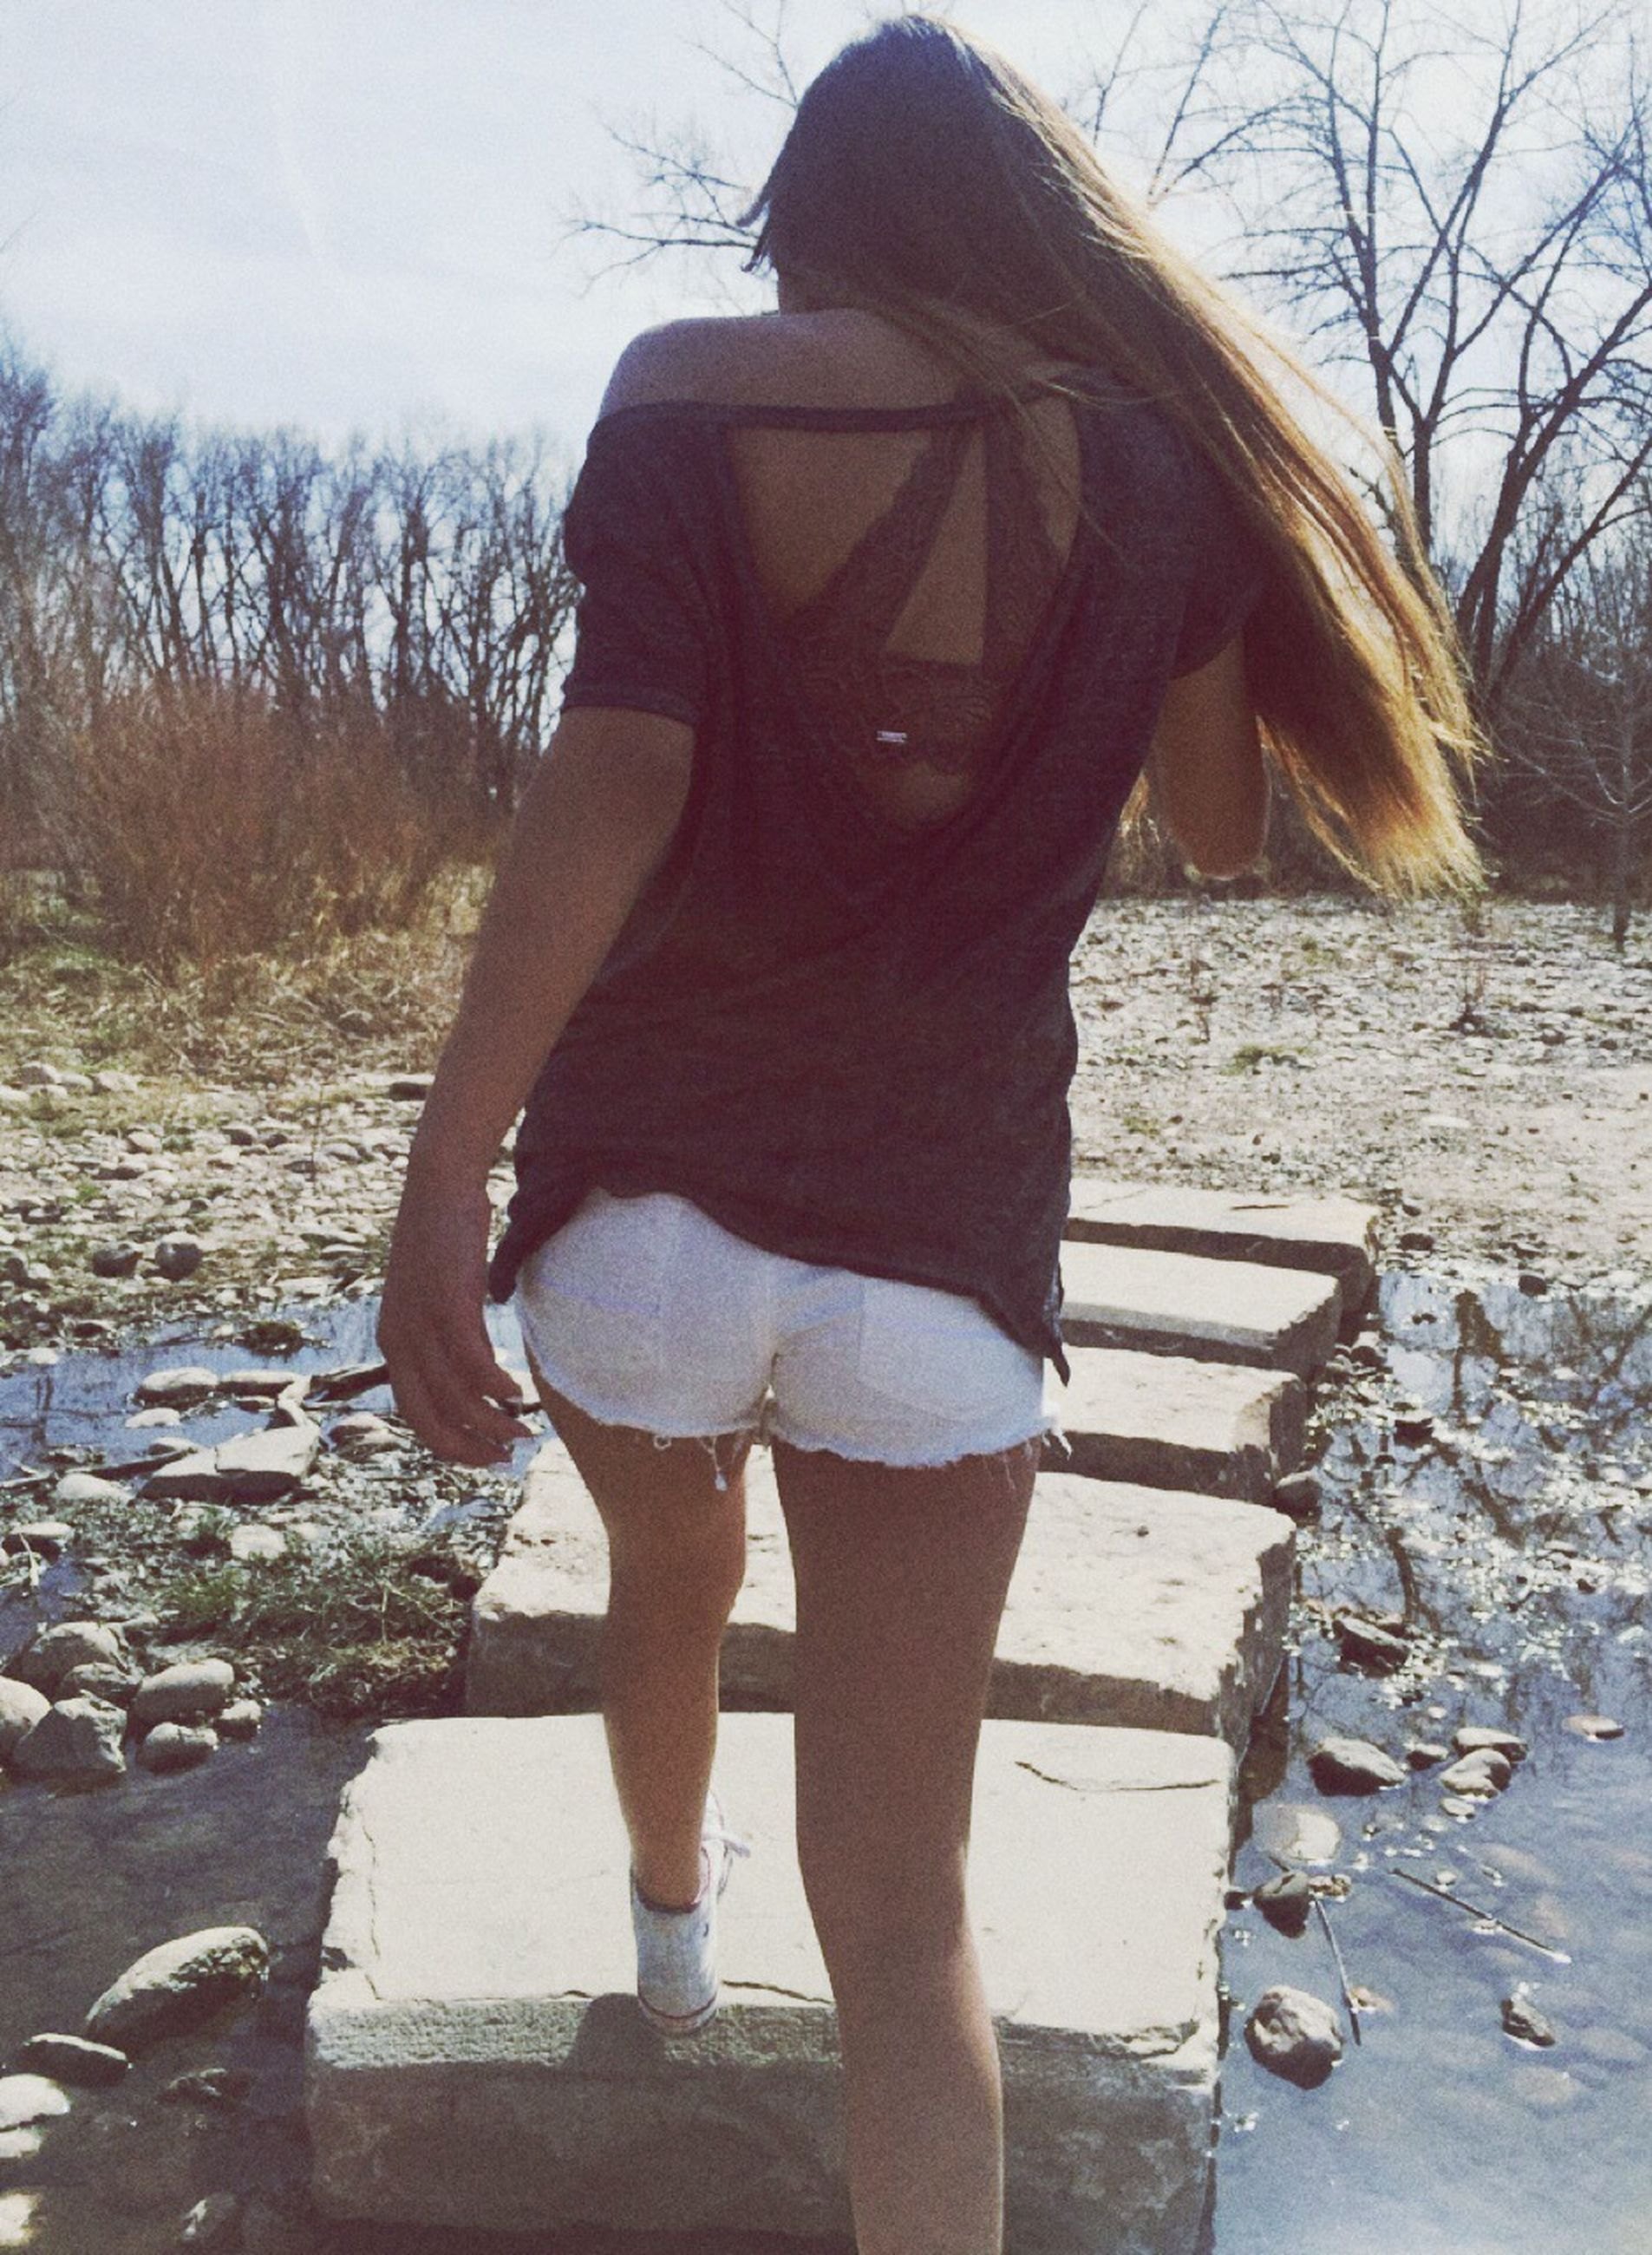 lifestyles, standing, leisure activity, bare tree, young adult, casual clothing, tree, full length, young women, person, rear view, three quarter length, outdoors, day, long hair, side view, front view, water